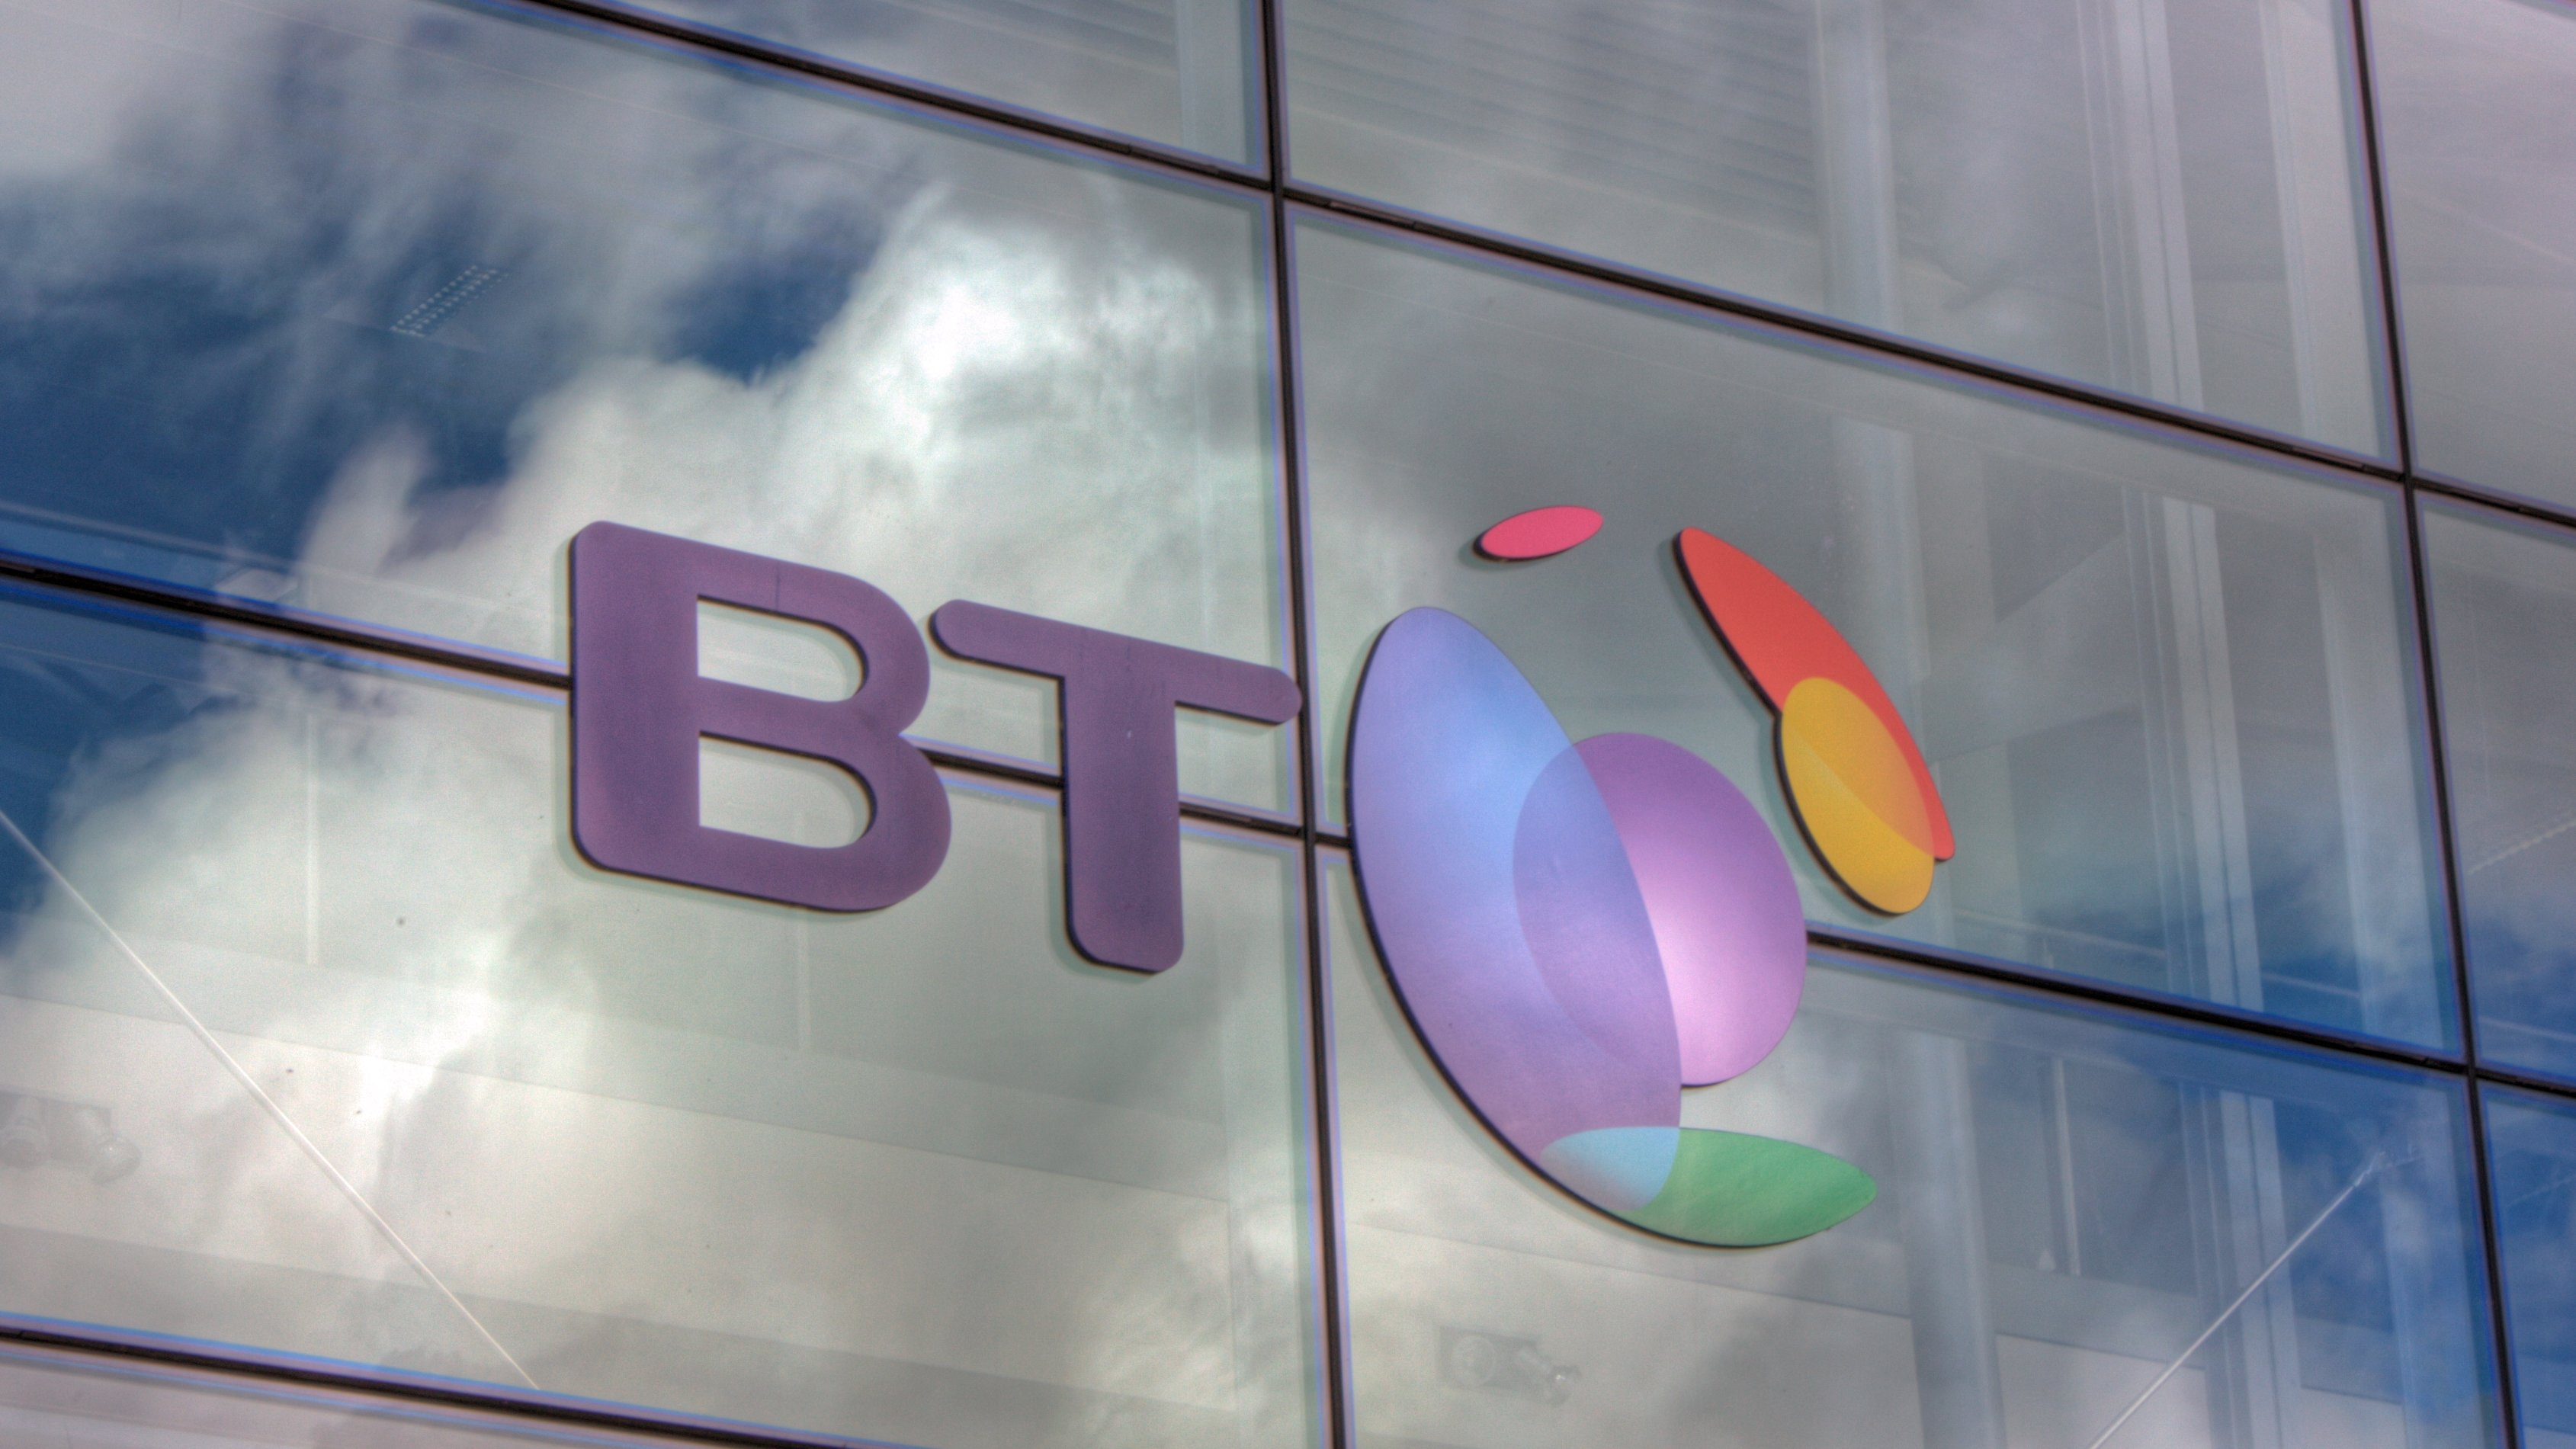 Bt Mobile Review A Family Friendly Network With Low Cost Deals For Bt Broadband